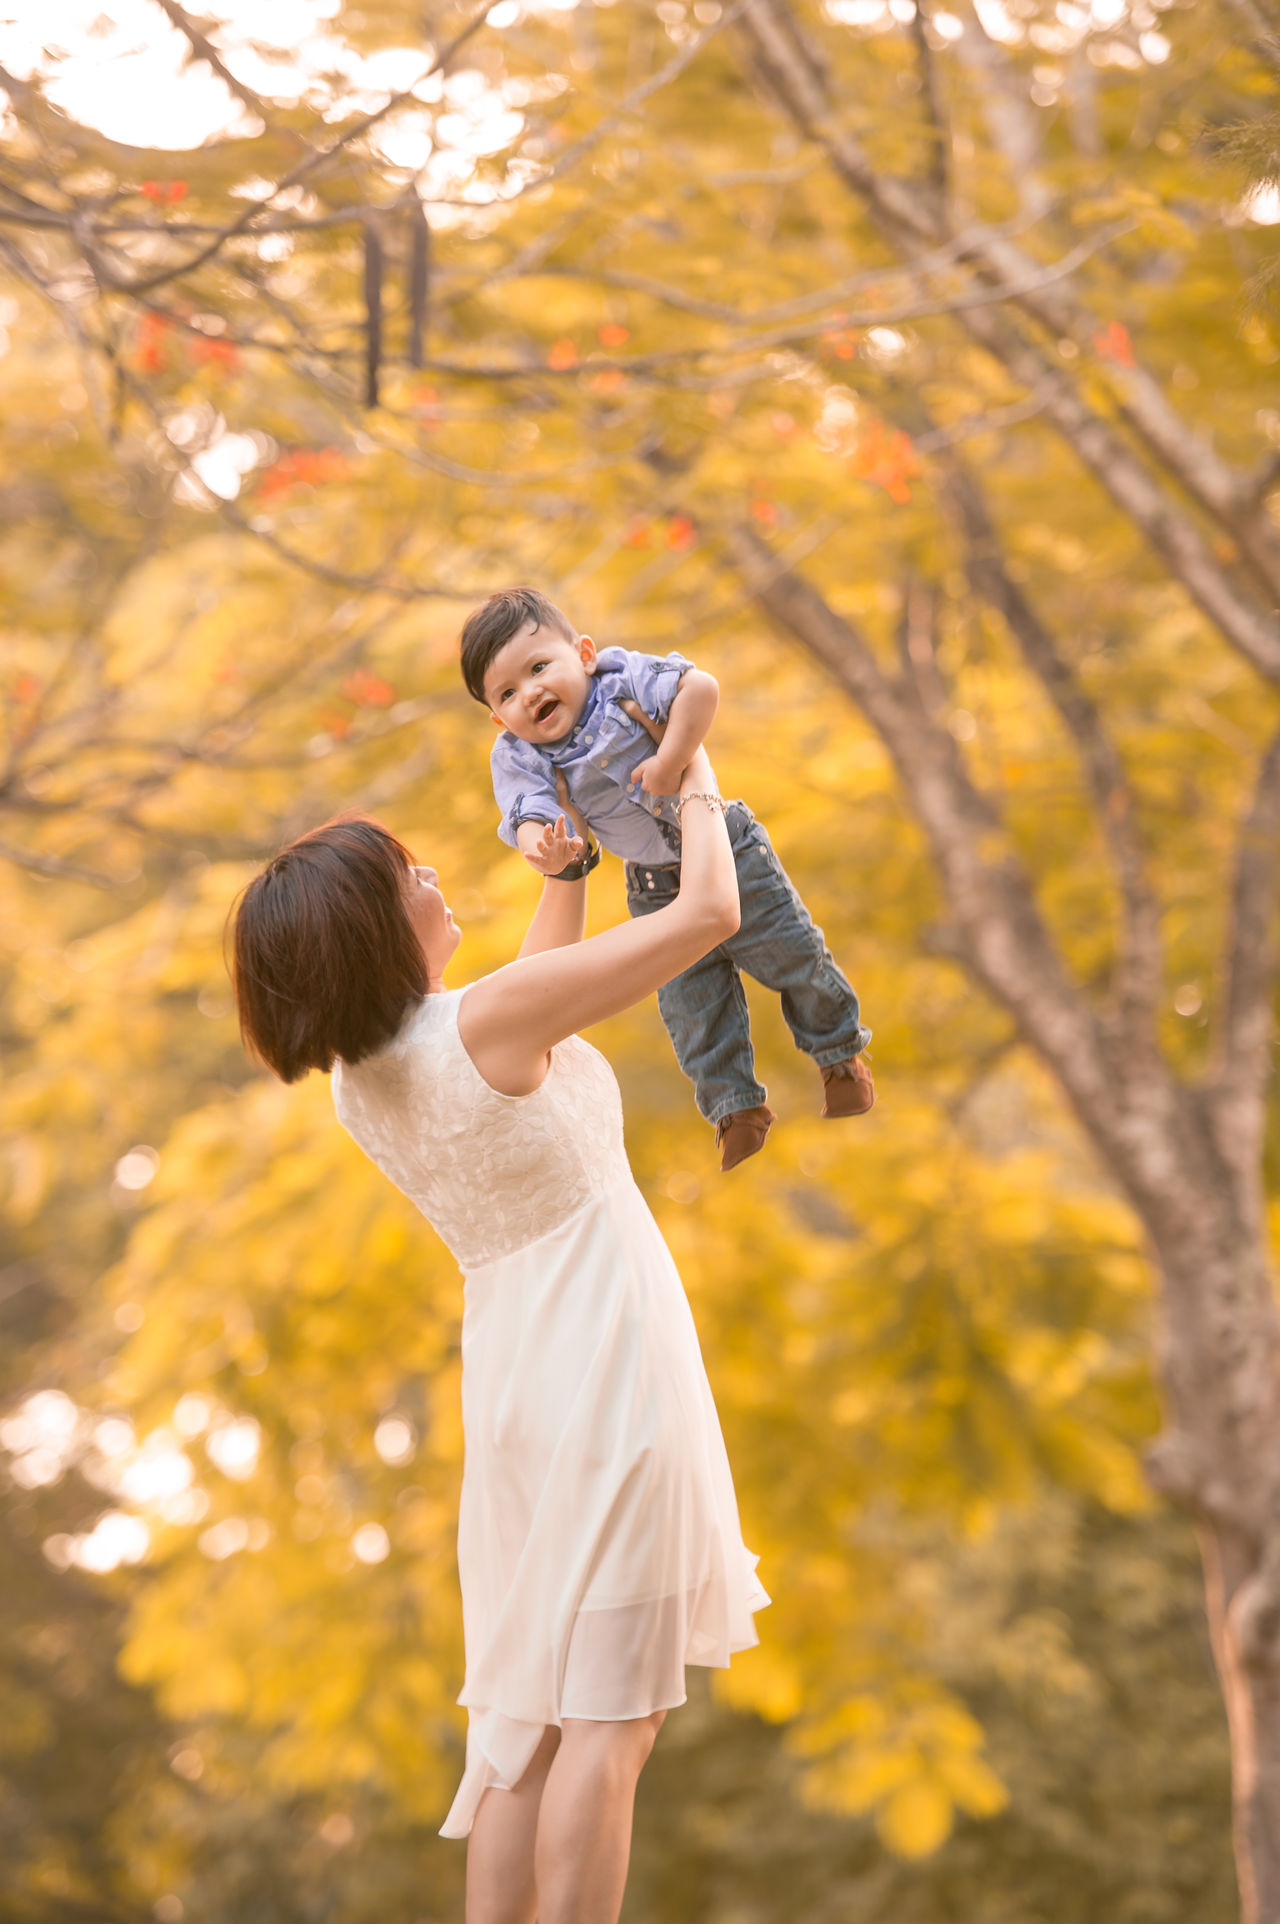 Chinese Family ASIA Asian  Asian Family Autumn Bonding Boys Change Childhood Chinese Day Family With One Child Father Focus On Foreground Leaf Leisure Activity Lifestyles Love Mid Adult Men Nature Outdoors Real People Son Togetherness Tree Young Women